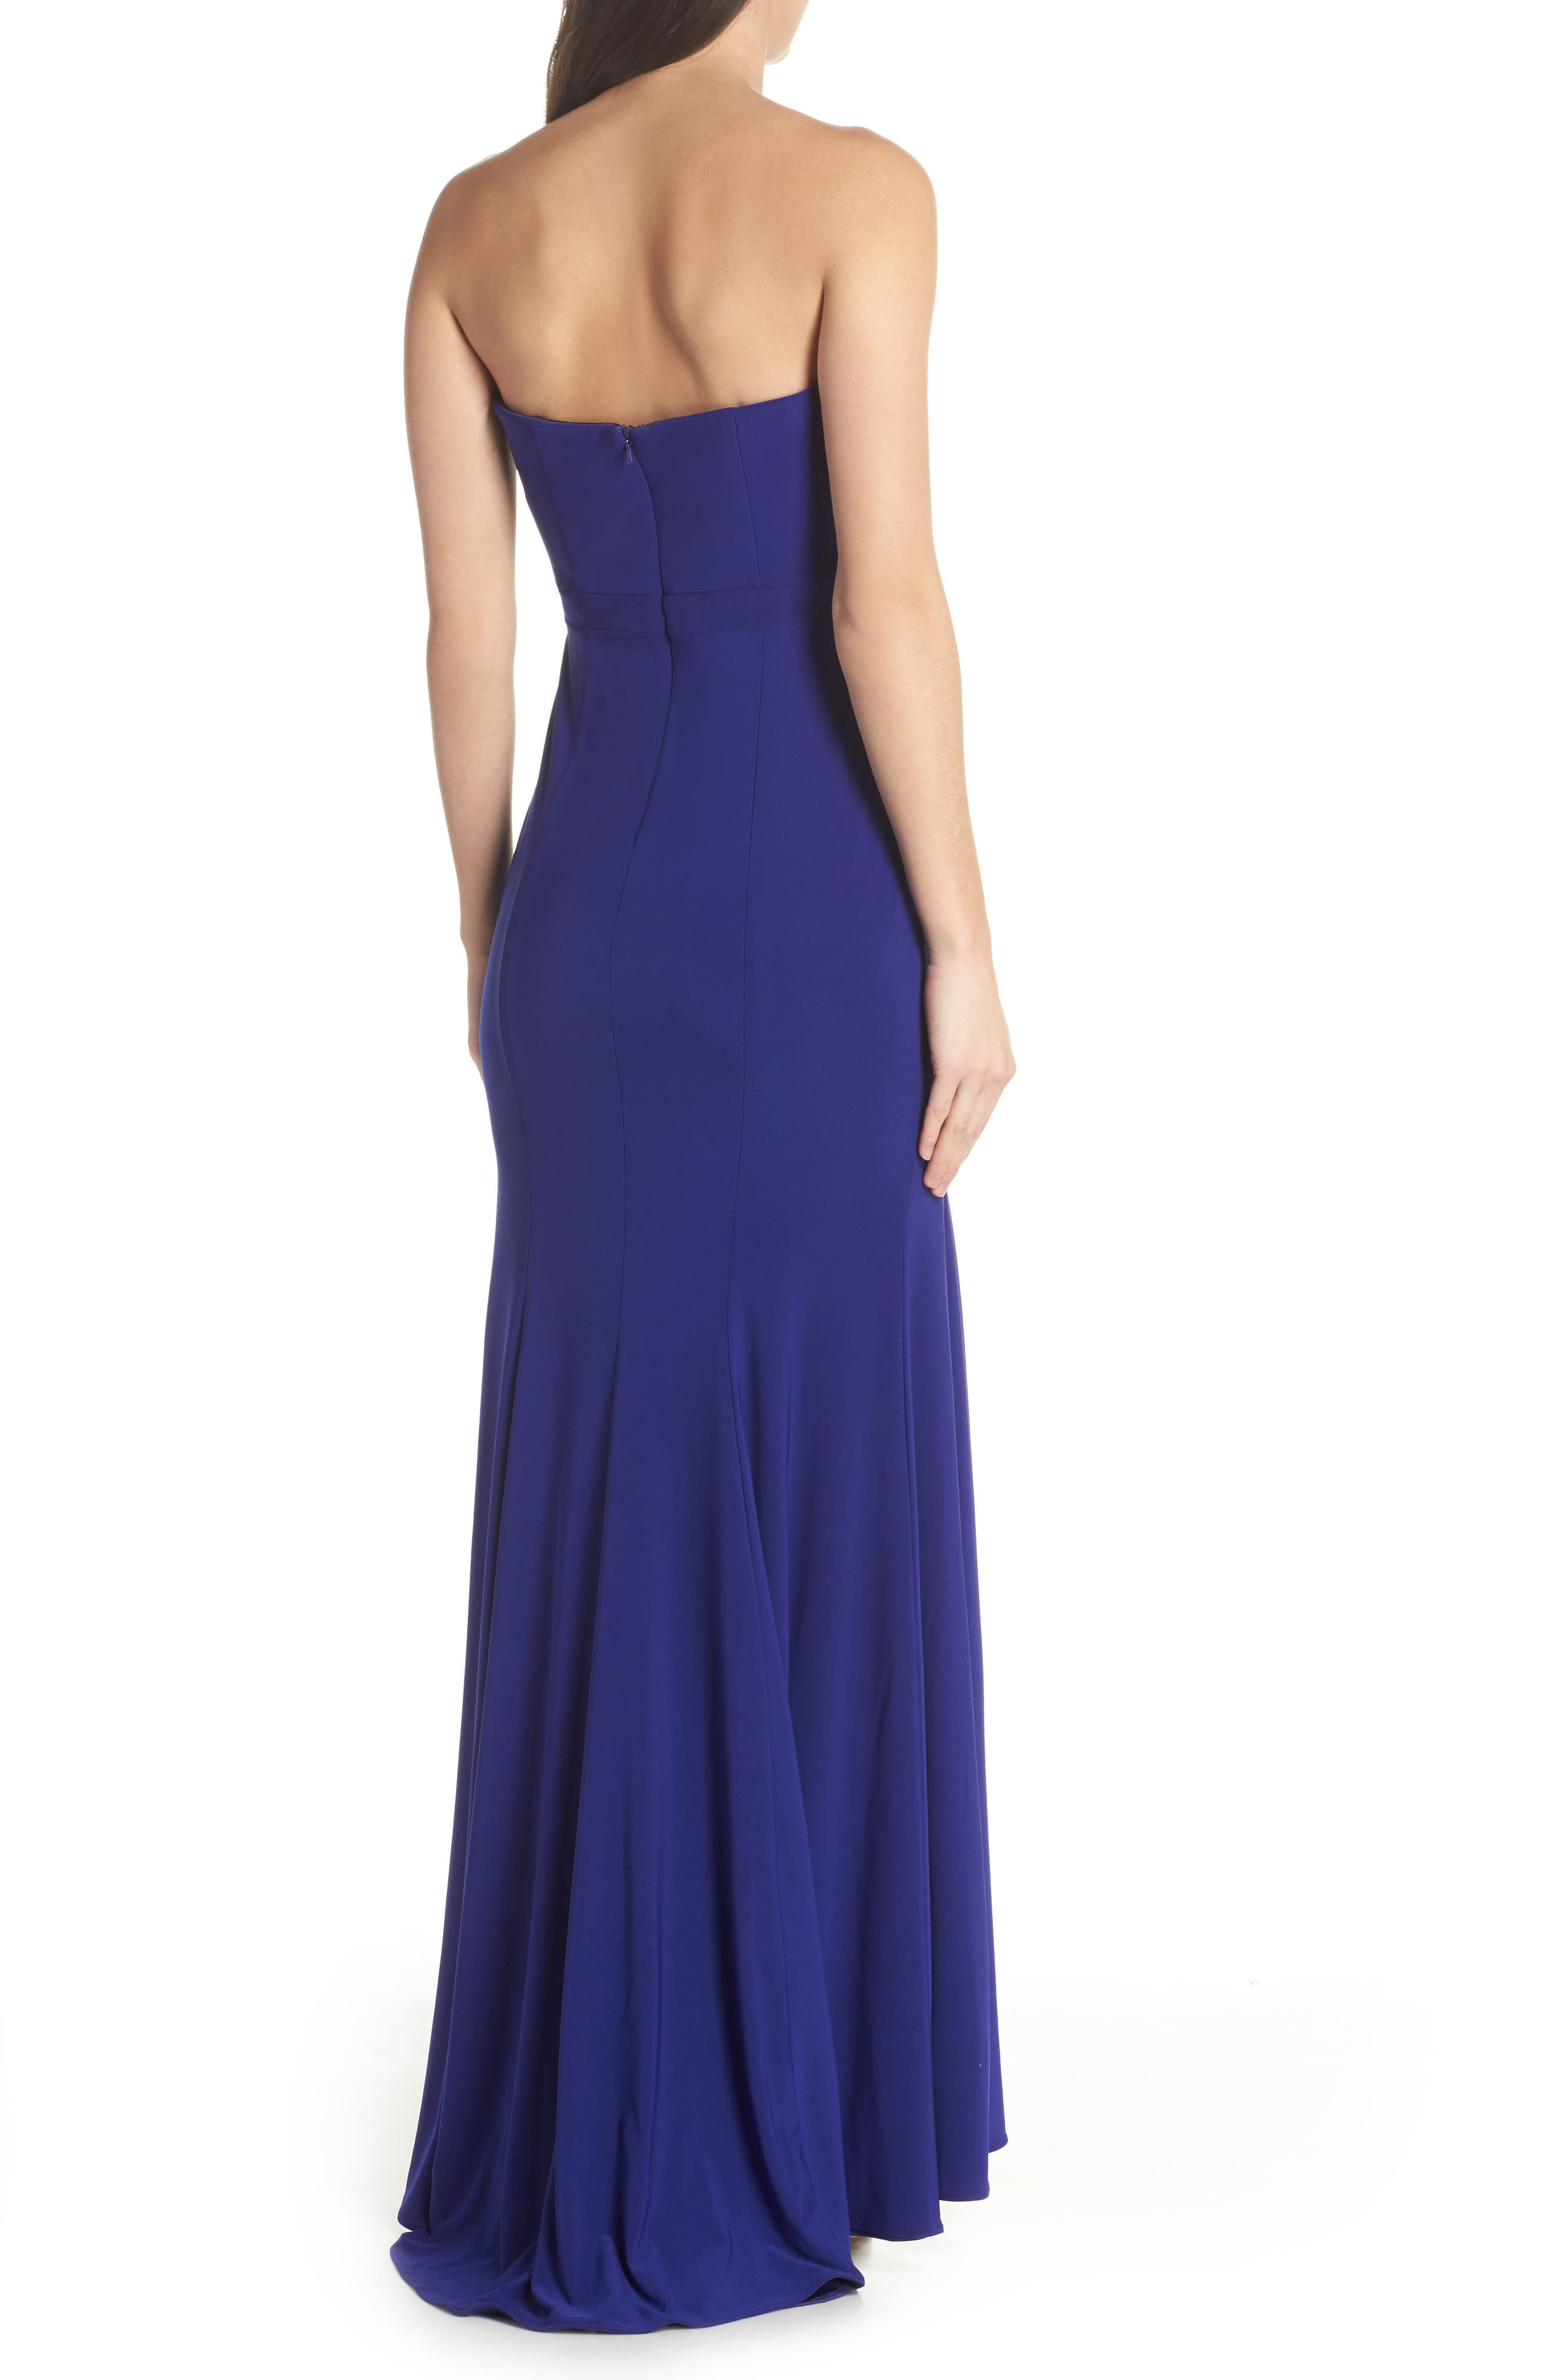 Bustier Strapless Gown,                             Alternate thumbnail 2, color,                             Electric Blue